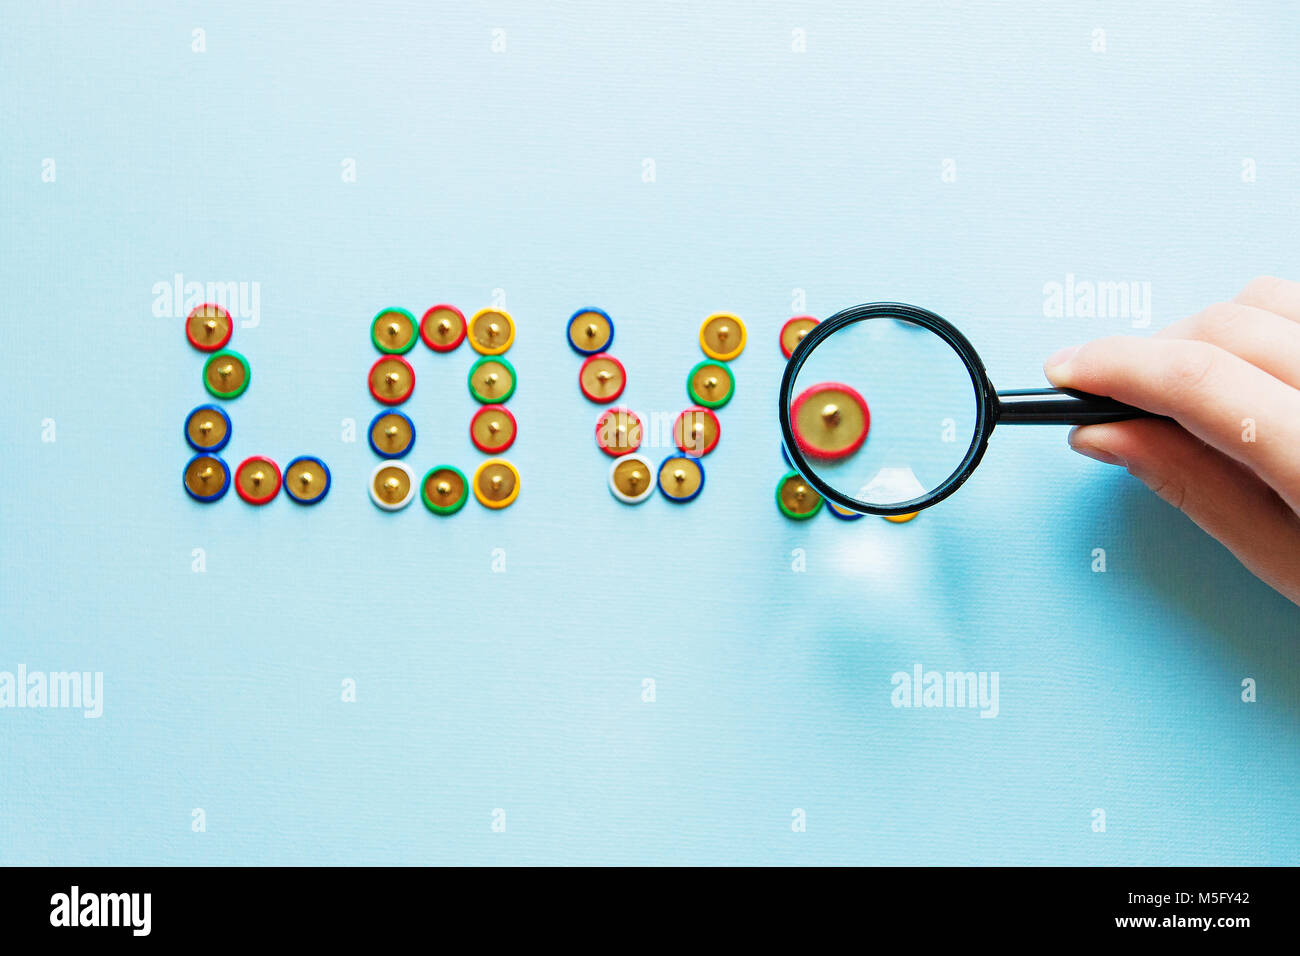 Word Love From Pins Collection Of Stationery Multicolored Buttons Under Magnifier Love Theme